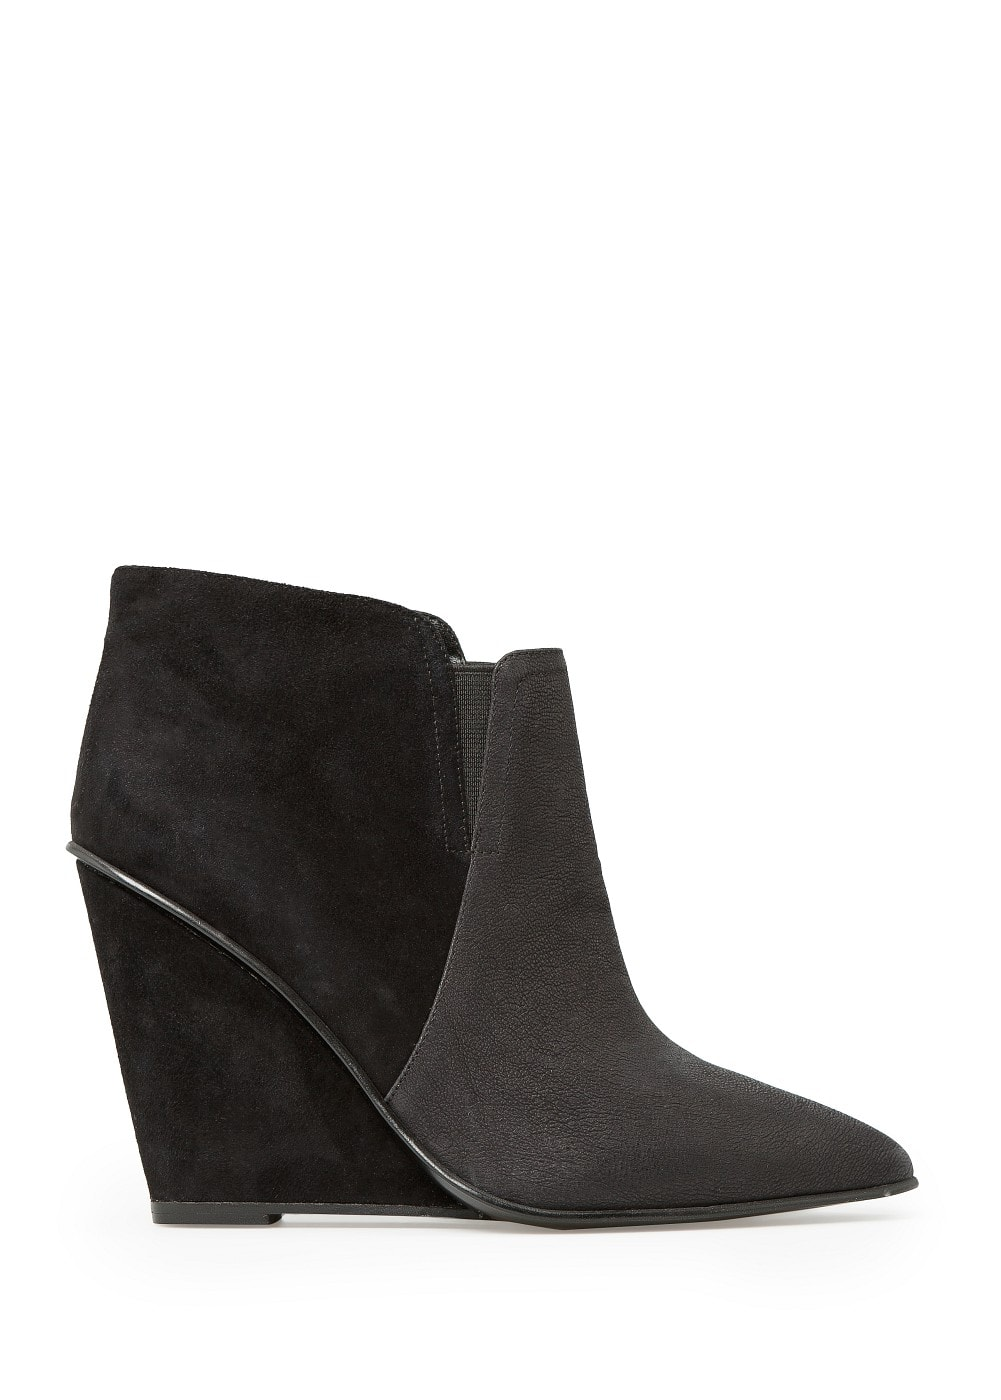 LEATHER AND SUEDE ANKLE BOOTS